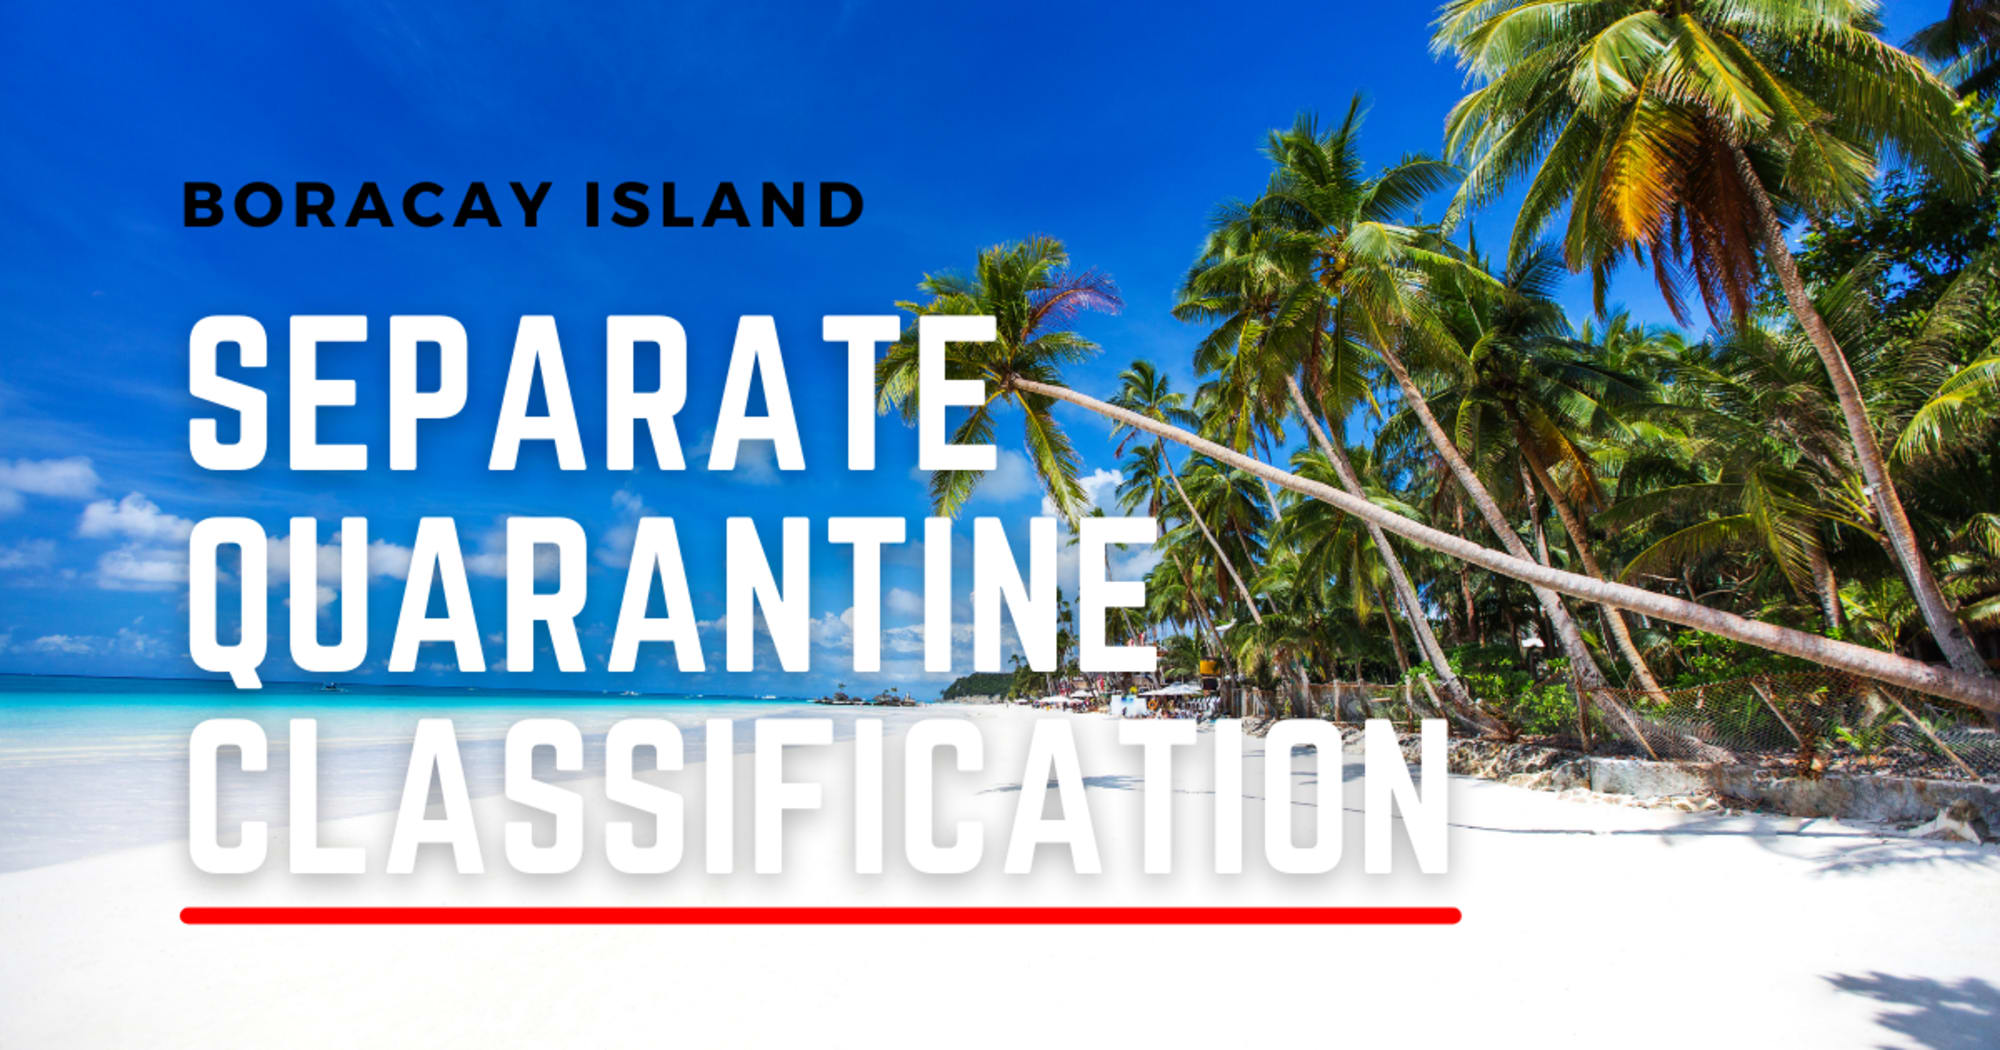 Boracay should have a separate quarantine classification from the rest of Aklan - Puyat